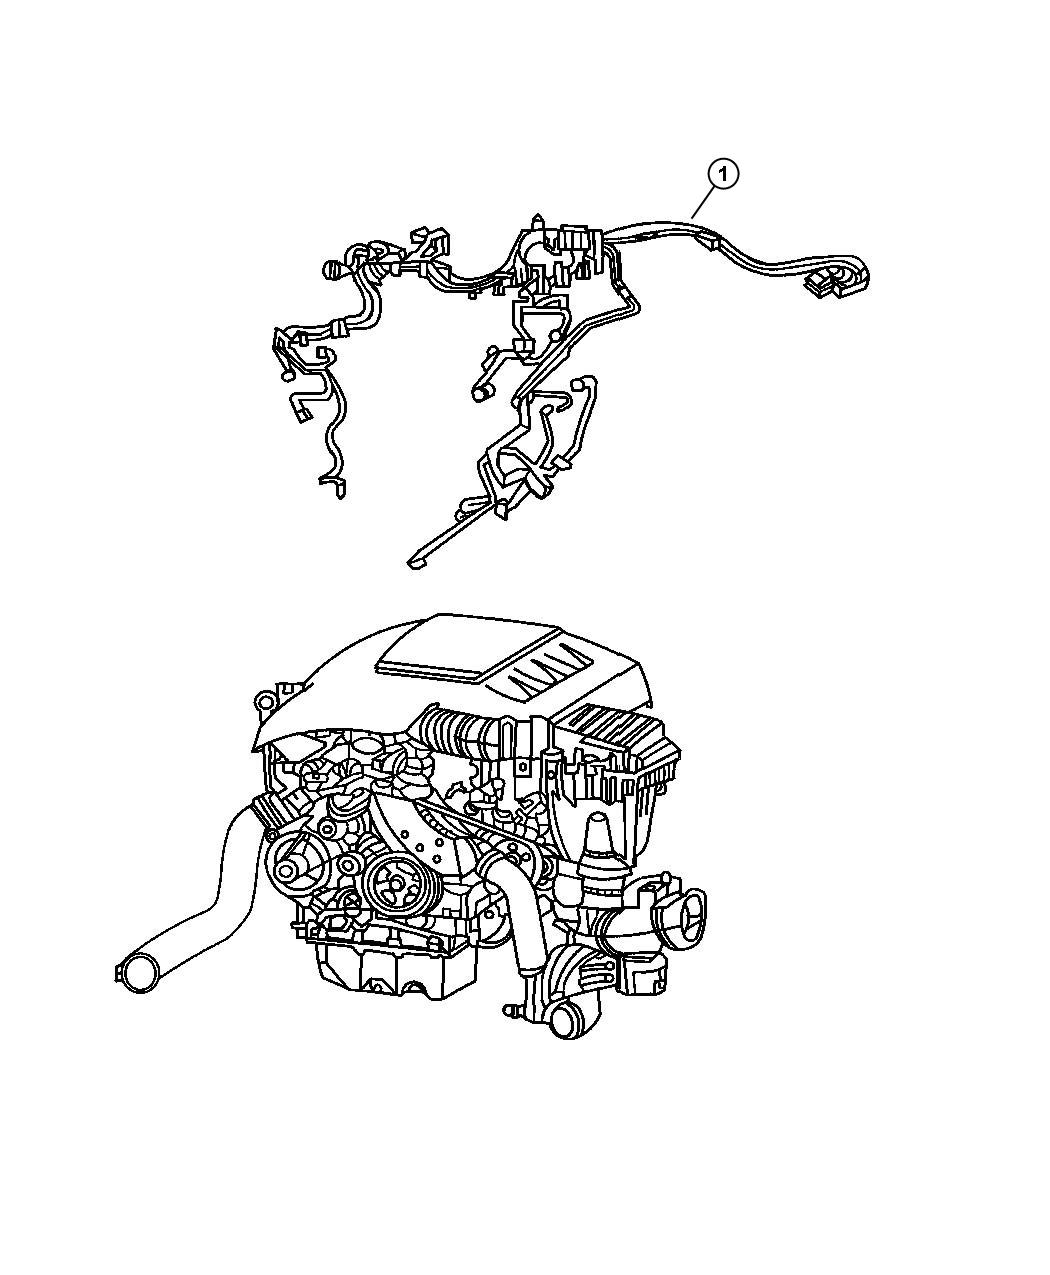 Jeep Grand Cherokee Wiring Engine Aftersel